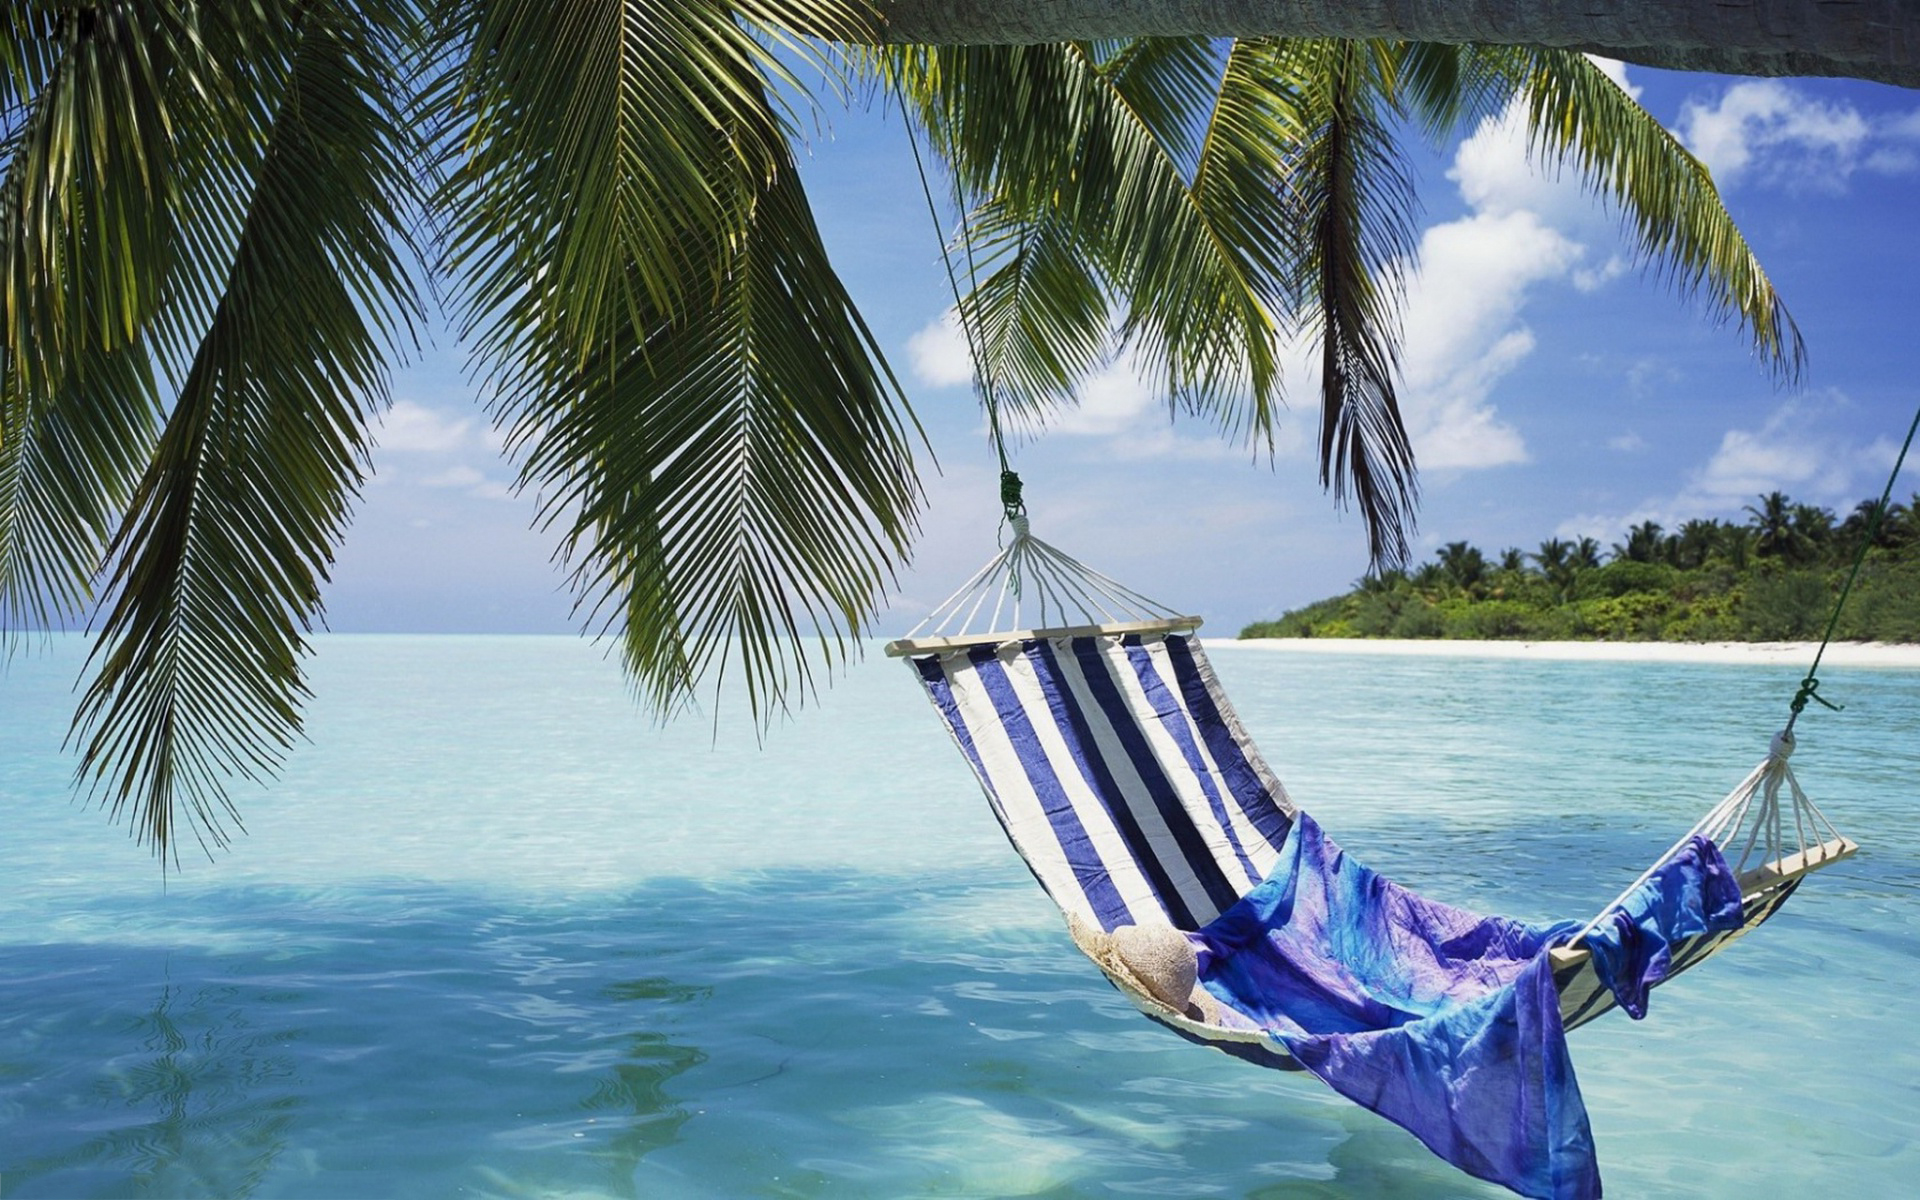 Hammock under palms